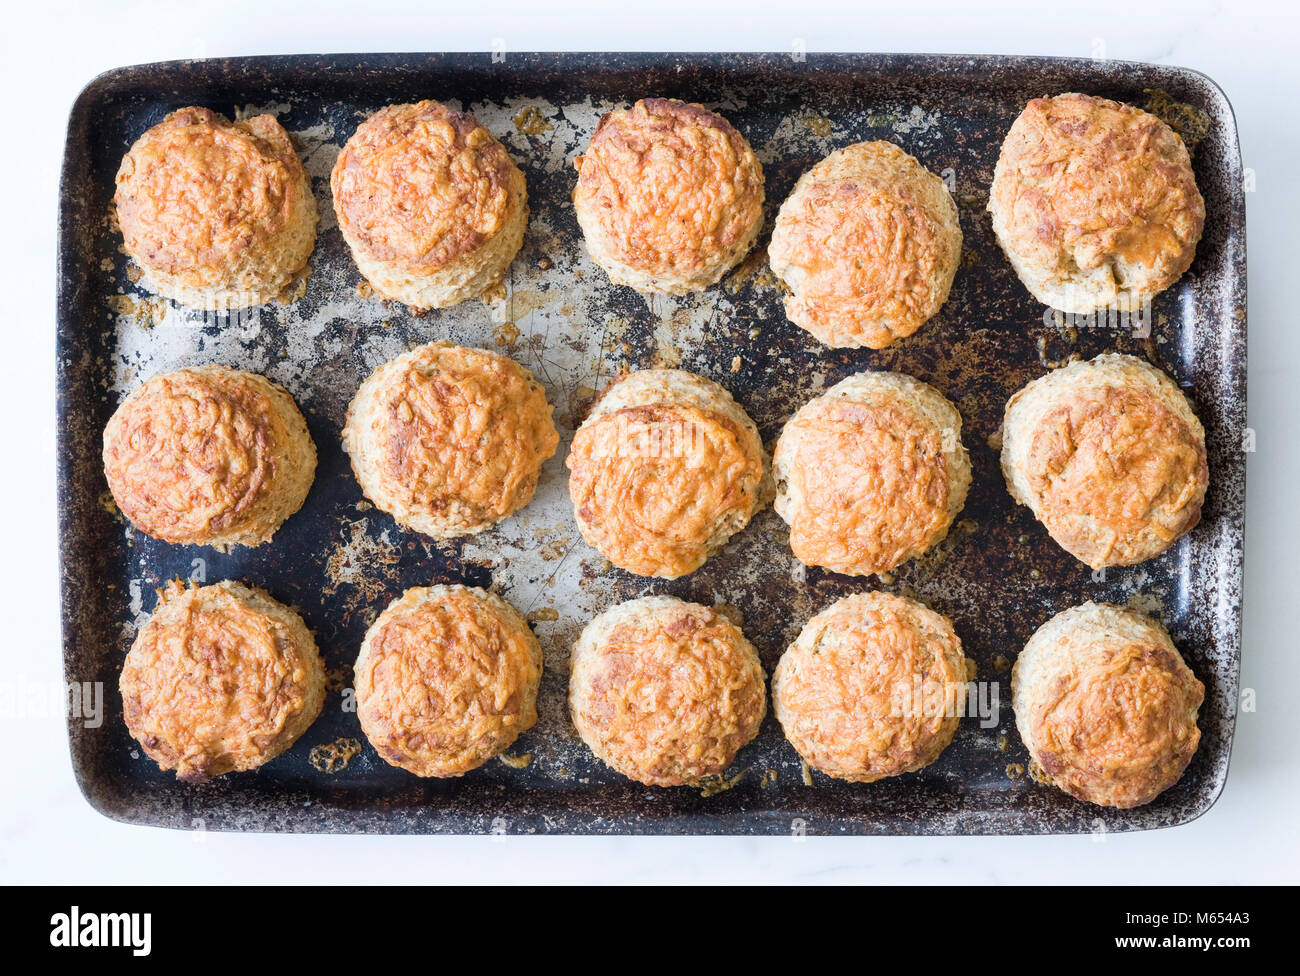 Freshly baked cheese scones on a baking tray. - Stock Image